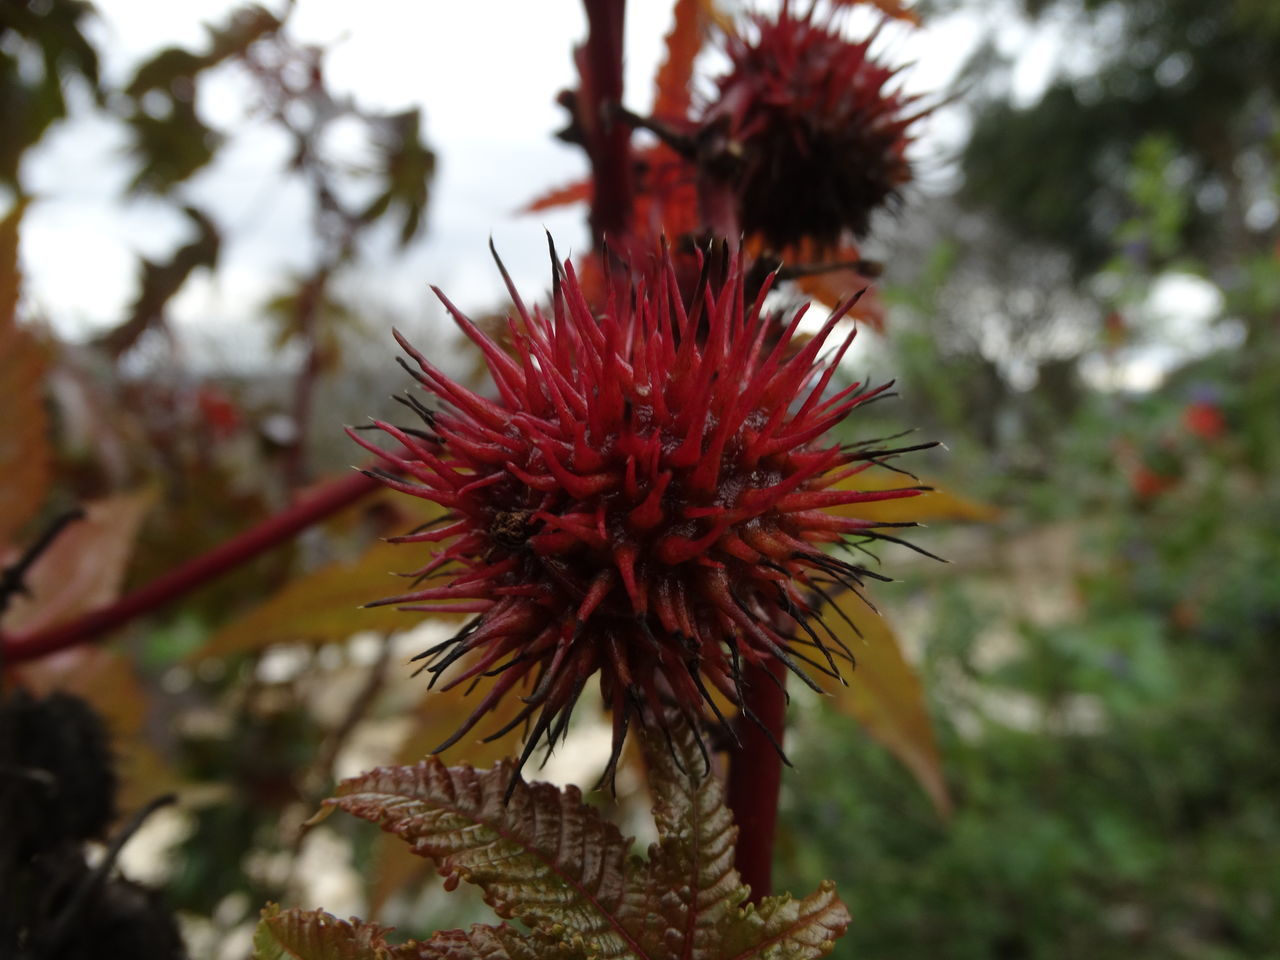 Beauty In Nature Close-up Day Flower Flower Head Fragility Freshness Growth Low Angle View Nature No People Outdoors Plant Red Spiky Tree